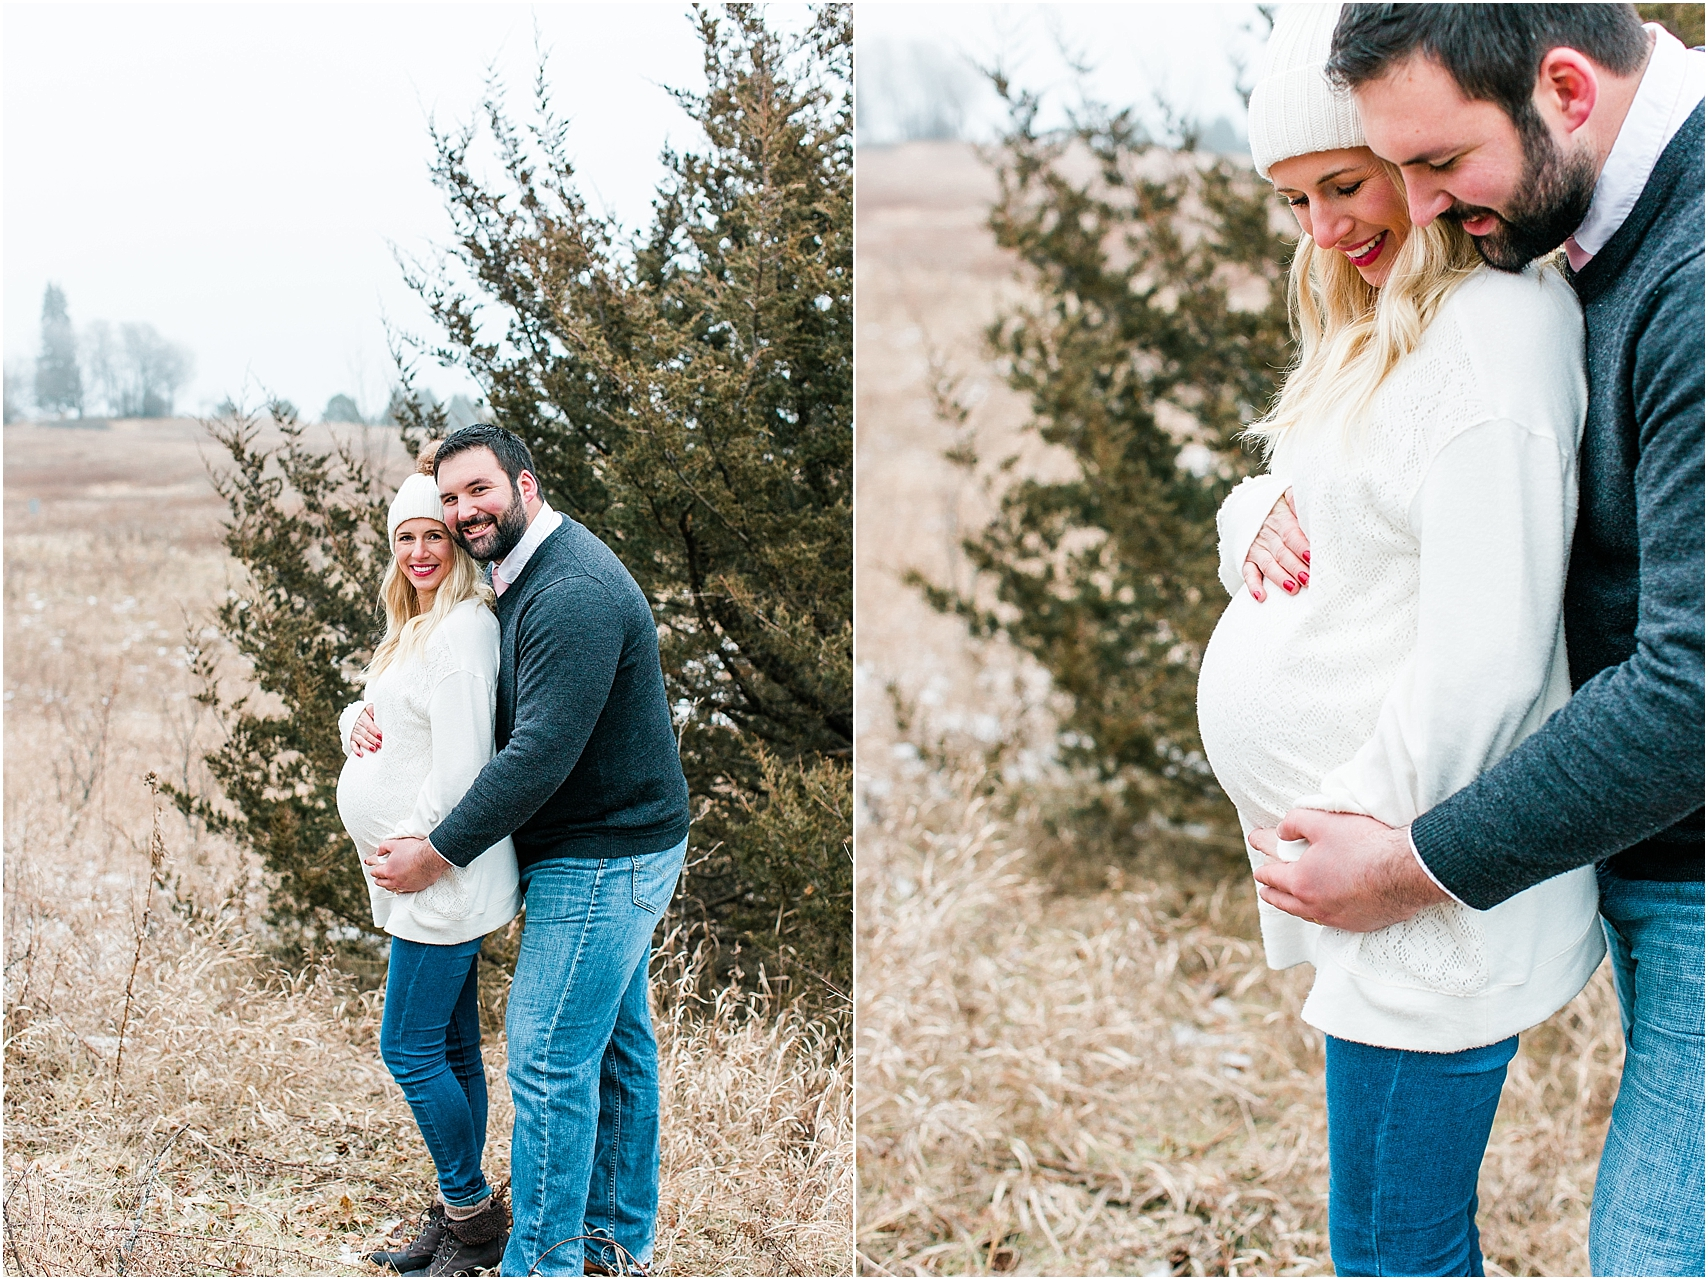 Minnesota winter maternity session Lake Ann Park Chanhassen photographed by Mallory Kiesow, Minnesota maternity photographer_017.jpg